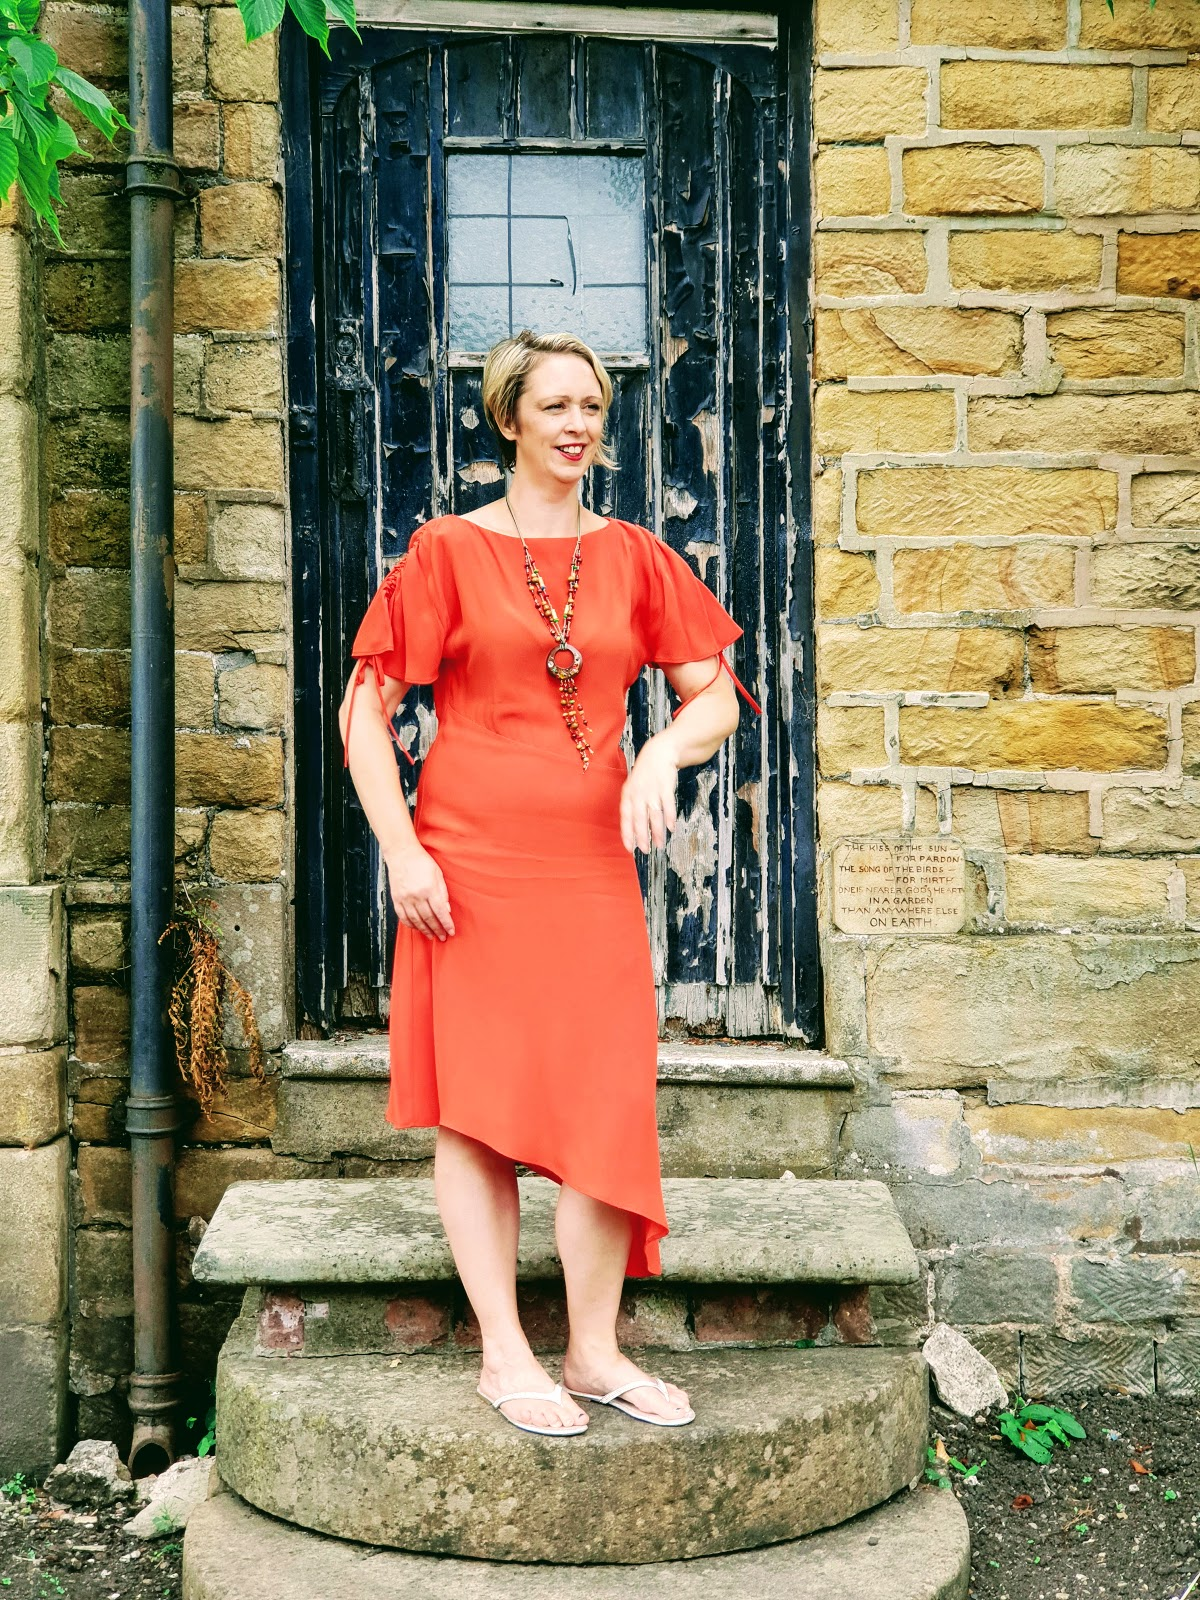 My Favourite Orange Dress: Over 40 Style